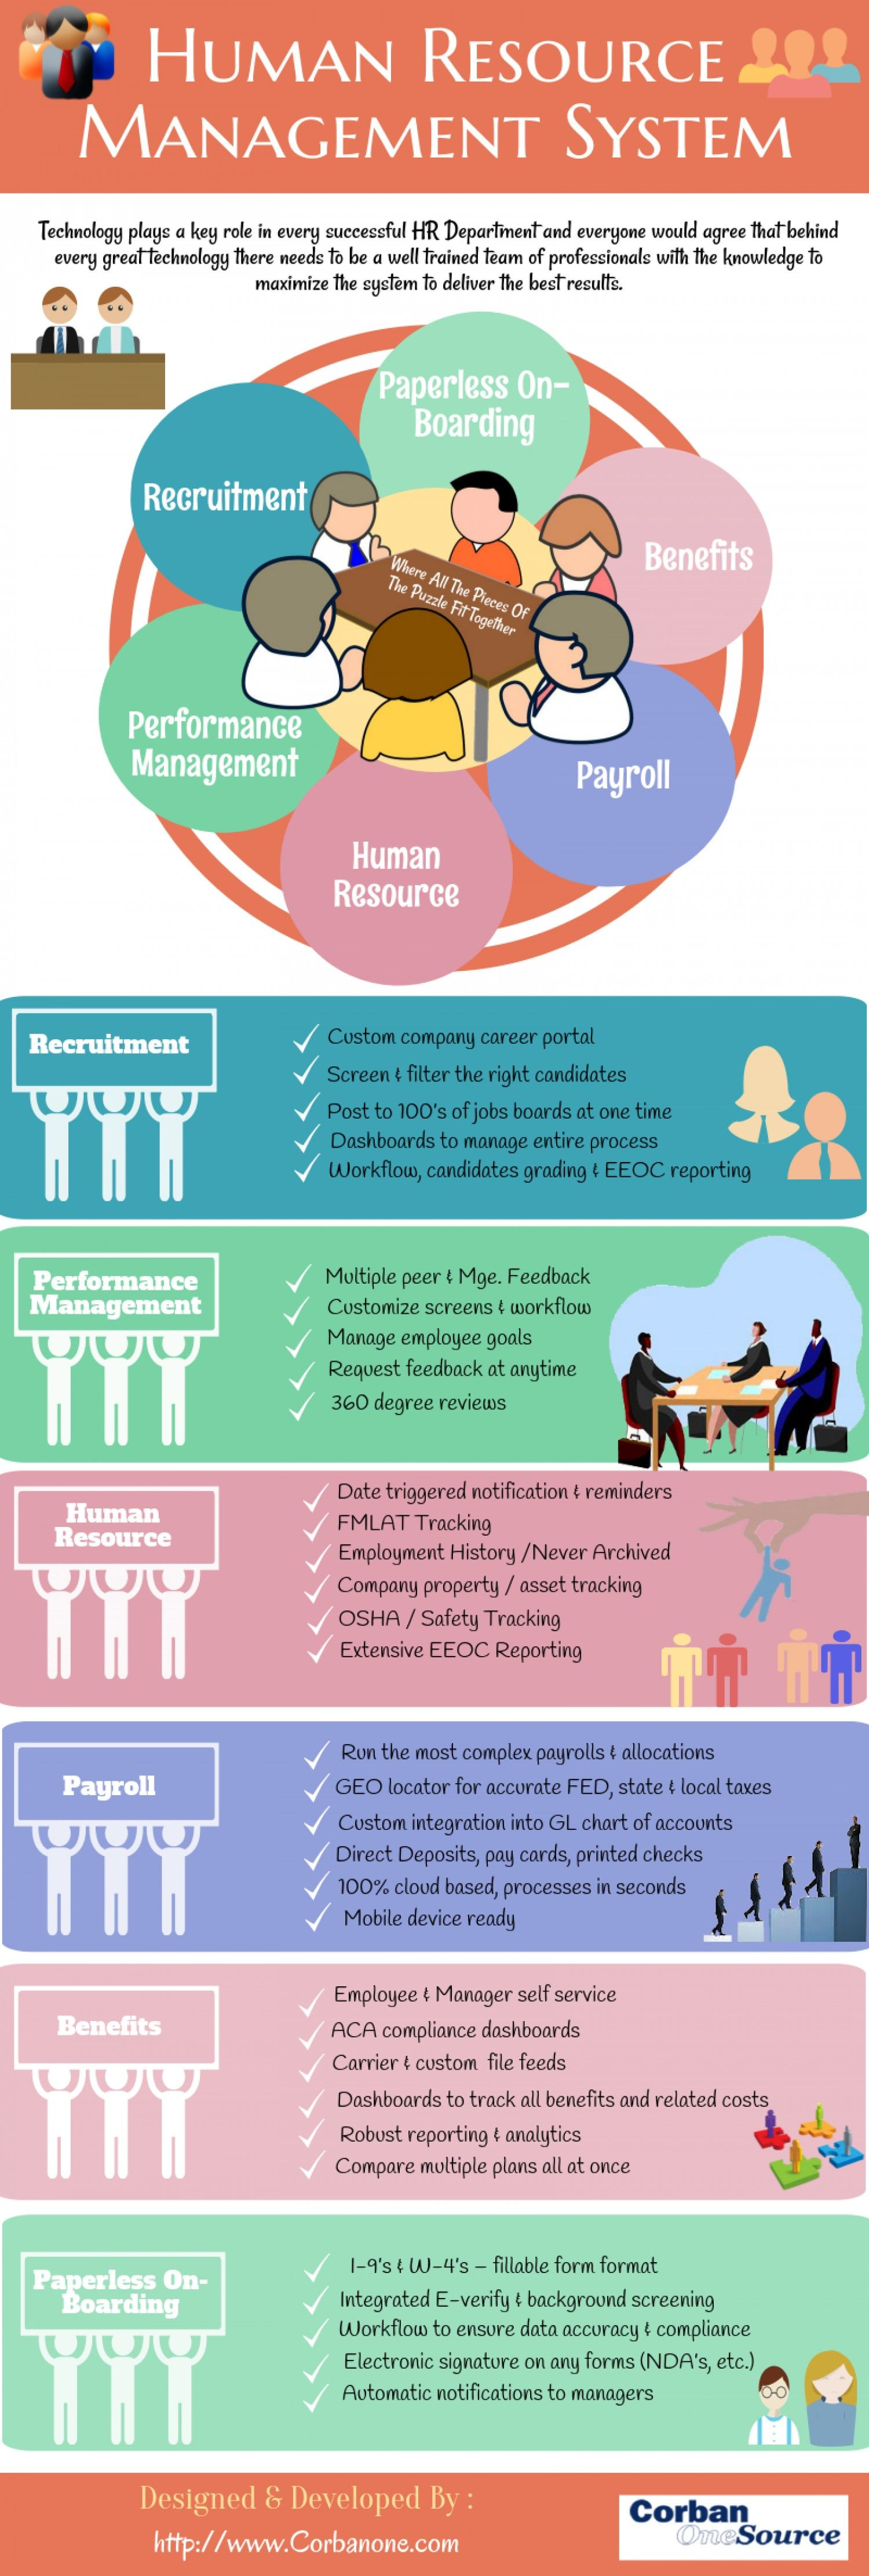 Human Resource Management System Visual Ly Human Resource Management System Human Resource Management Human Resources Infographic